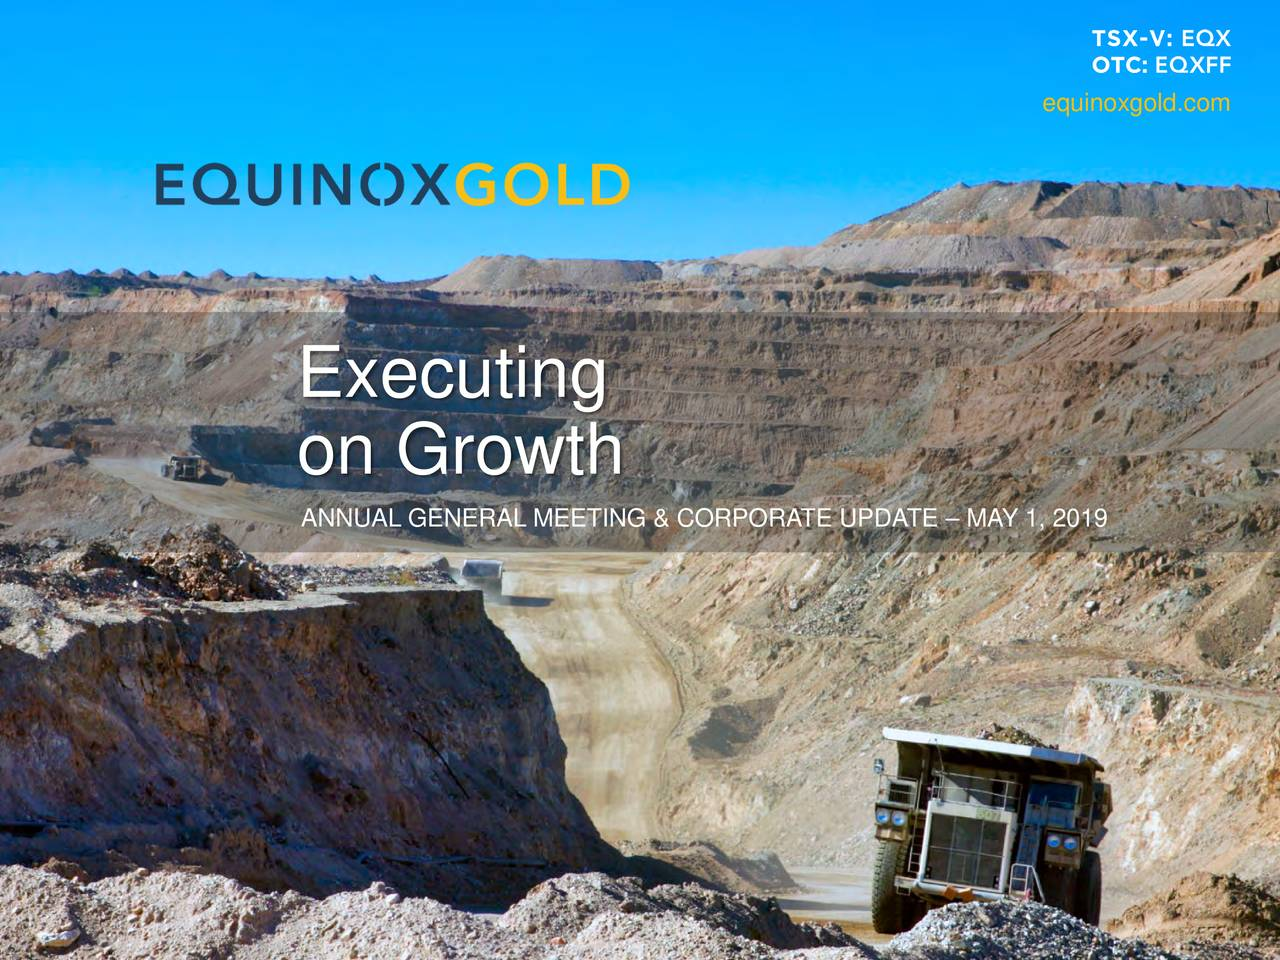 Executing on Growth ANNUAL GENERAL MEETING & CORPORATE UPDATE – MAY 1, 2019 1